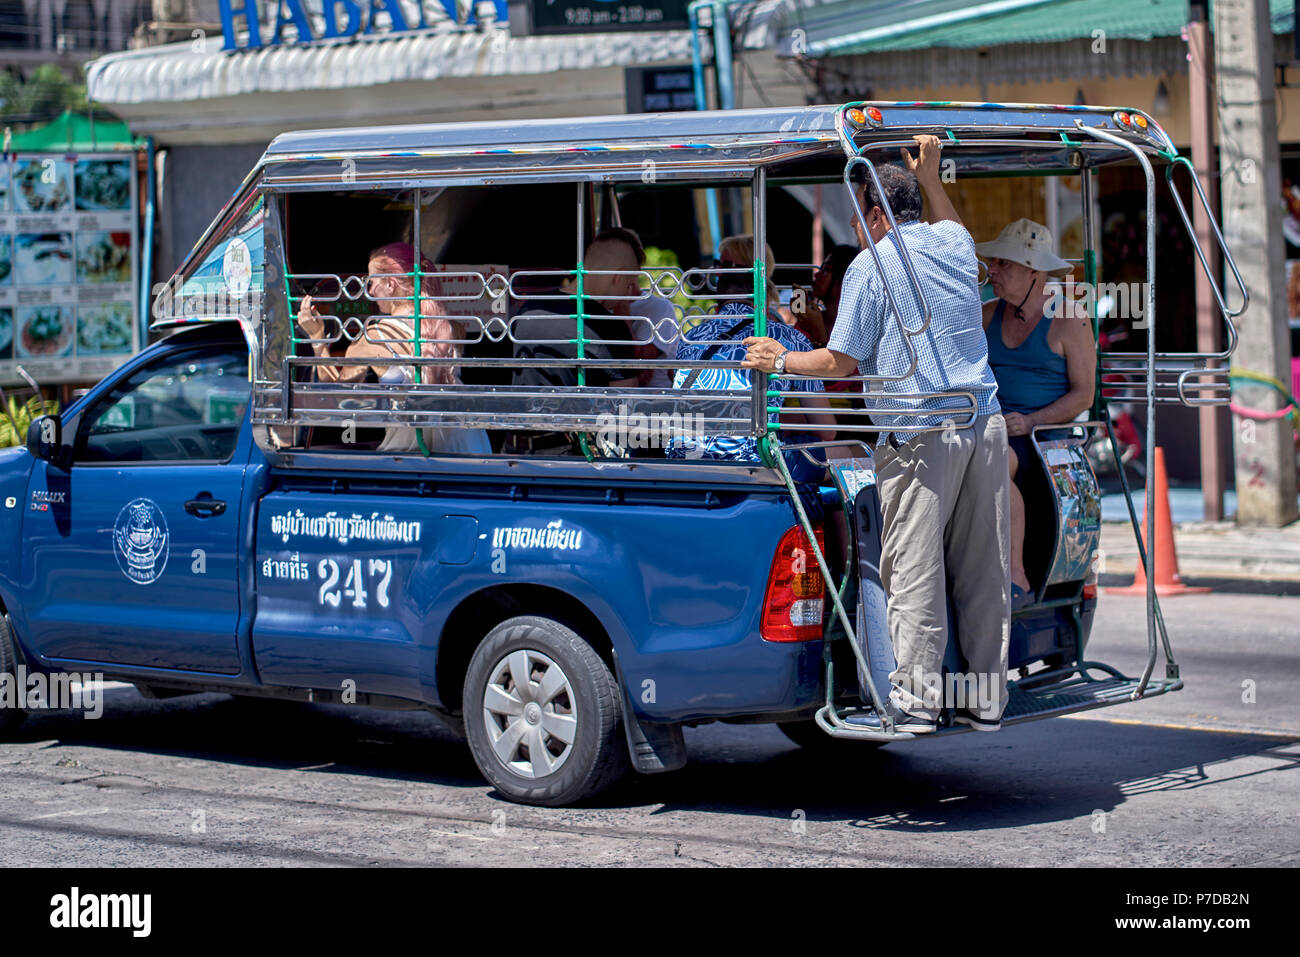 Fully loaded Songthaew taxi car Thailand with passengers riding on the tailgate platform - Stock Image